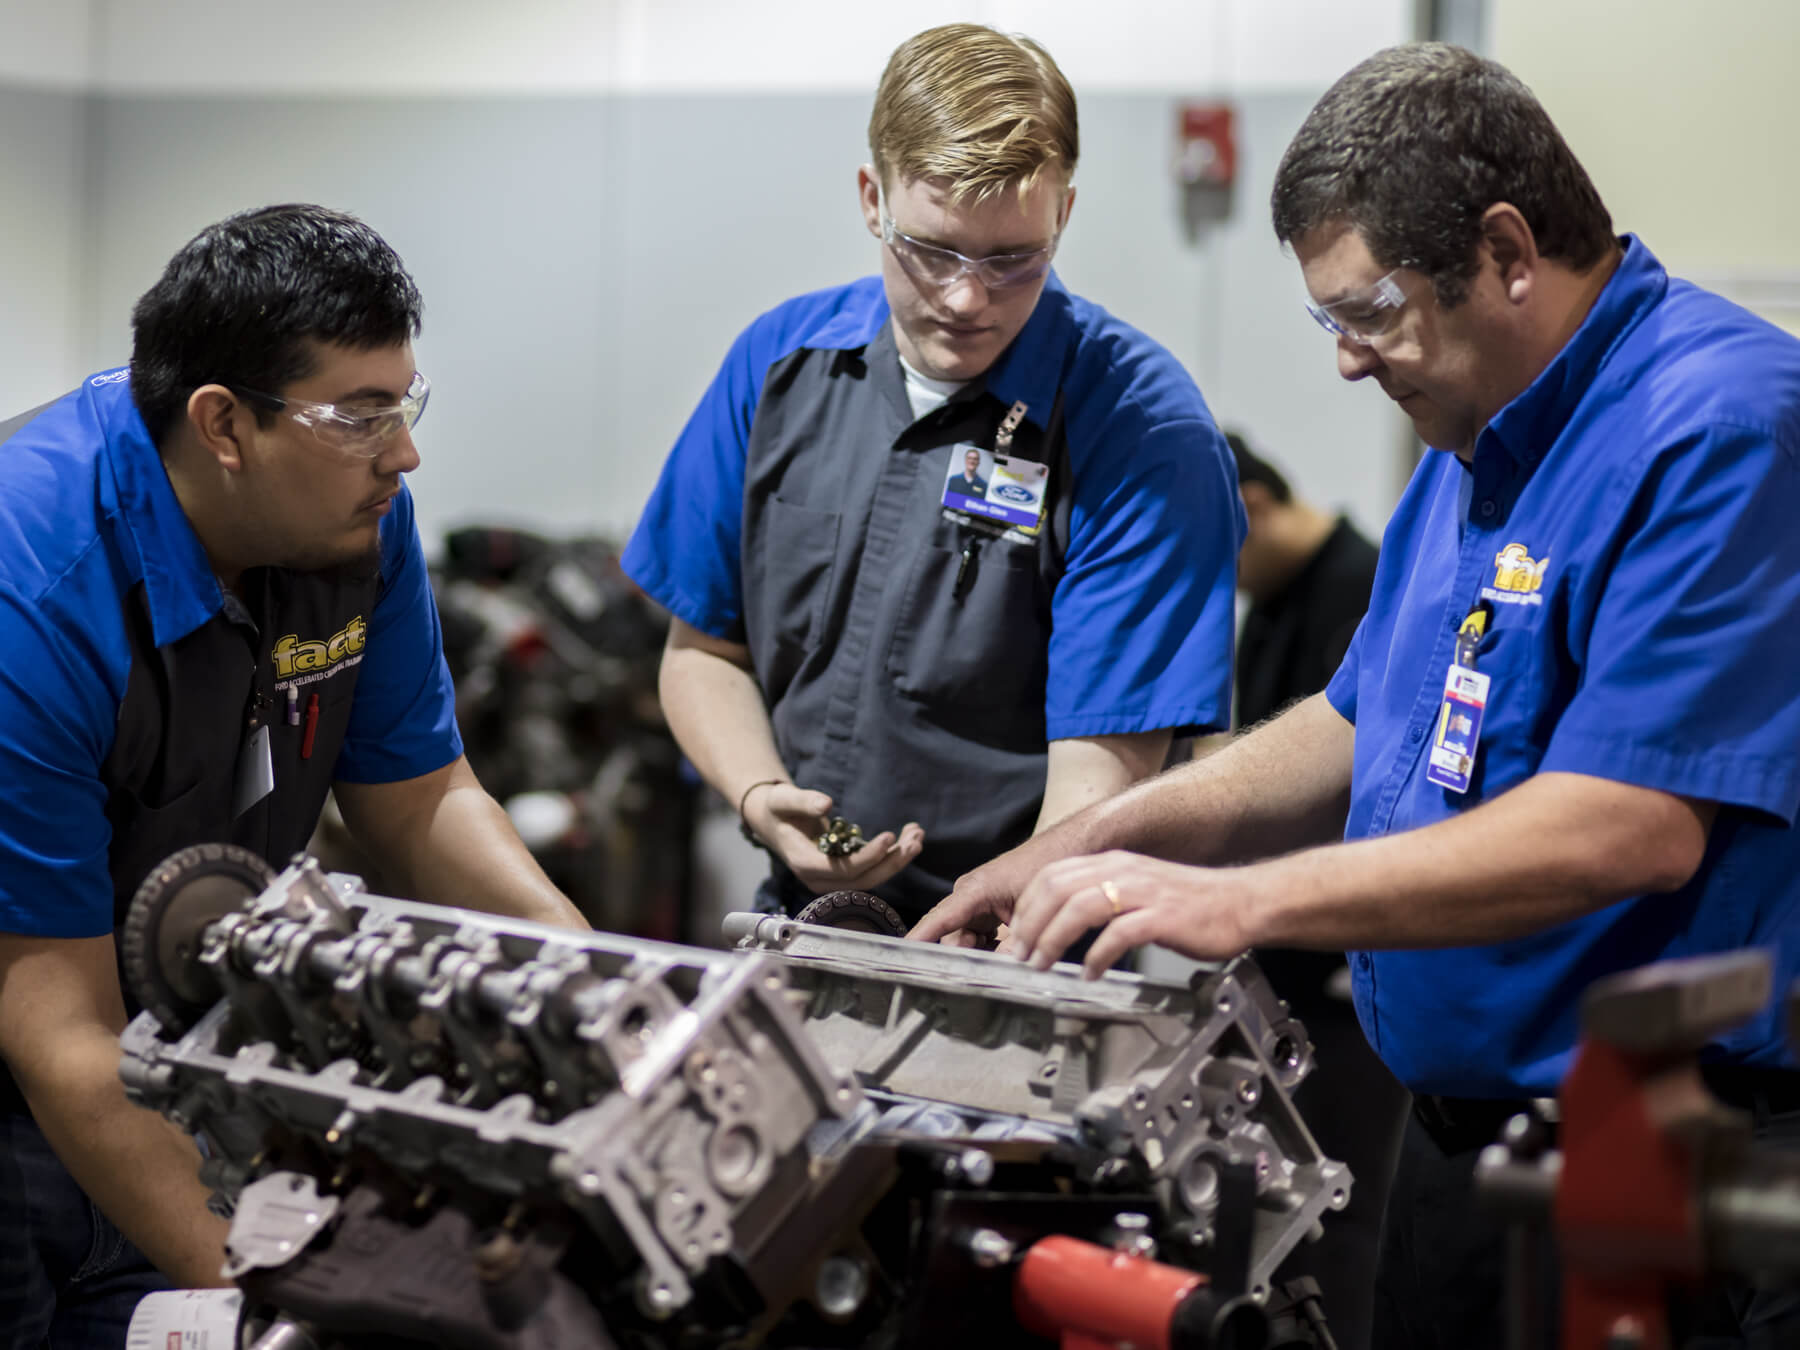 UTI instructor and students working on an engine in the ford auto lab